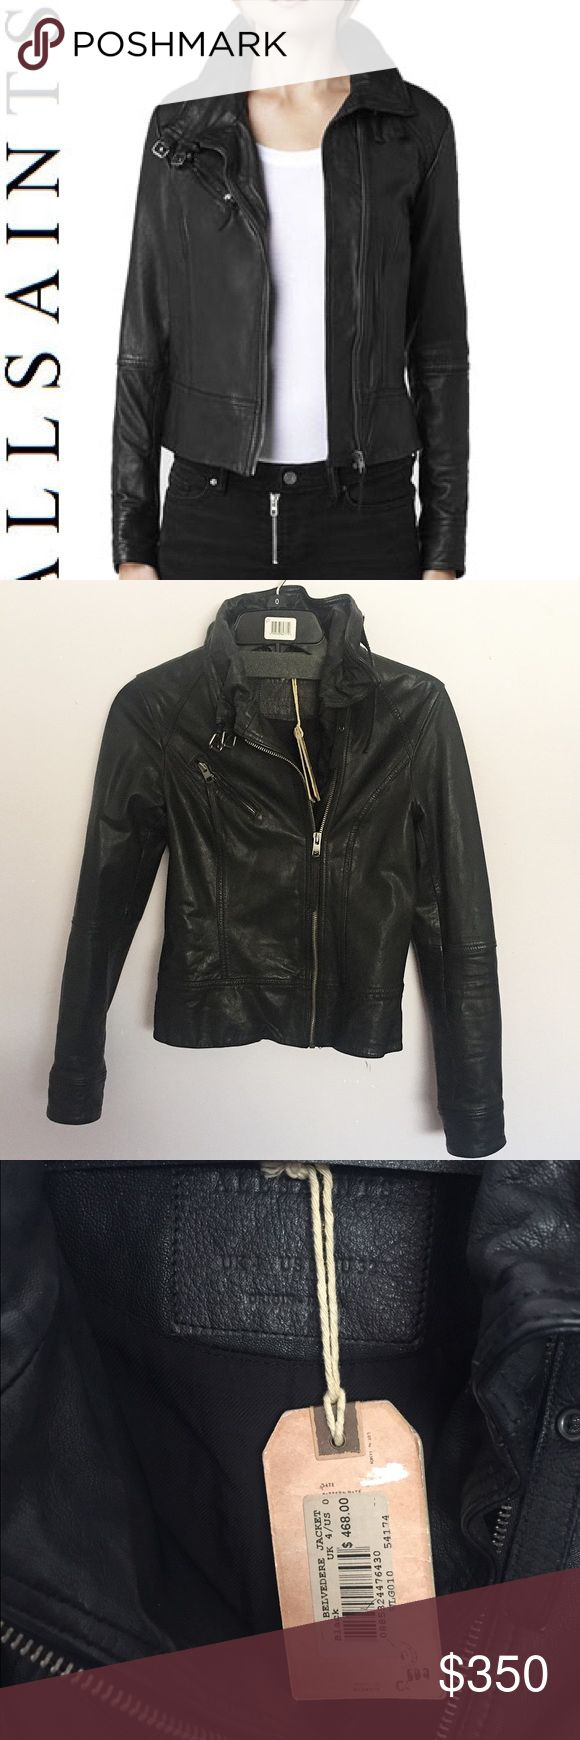 All saints leather jacket I don't want to part with this